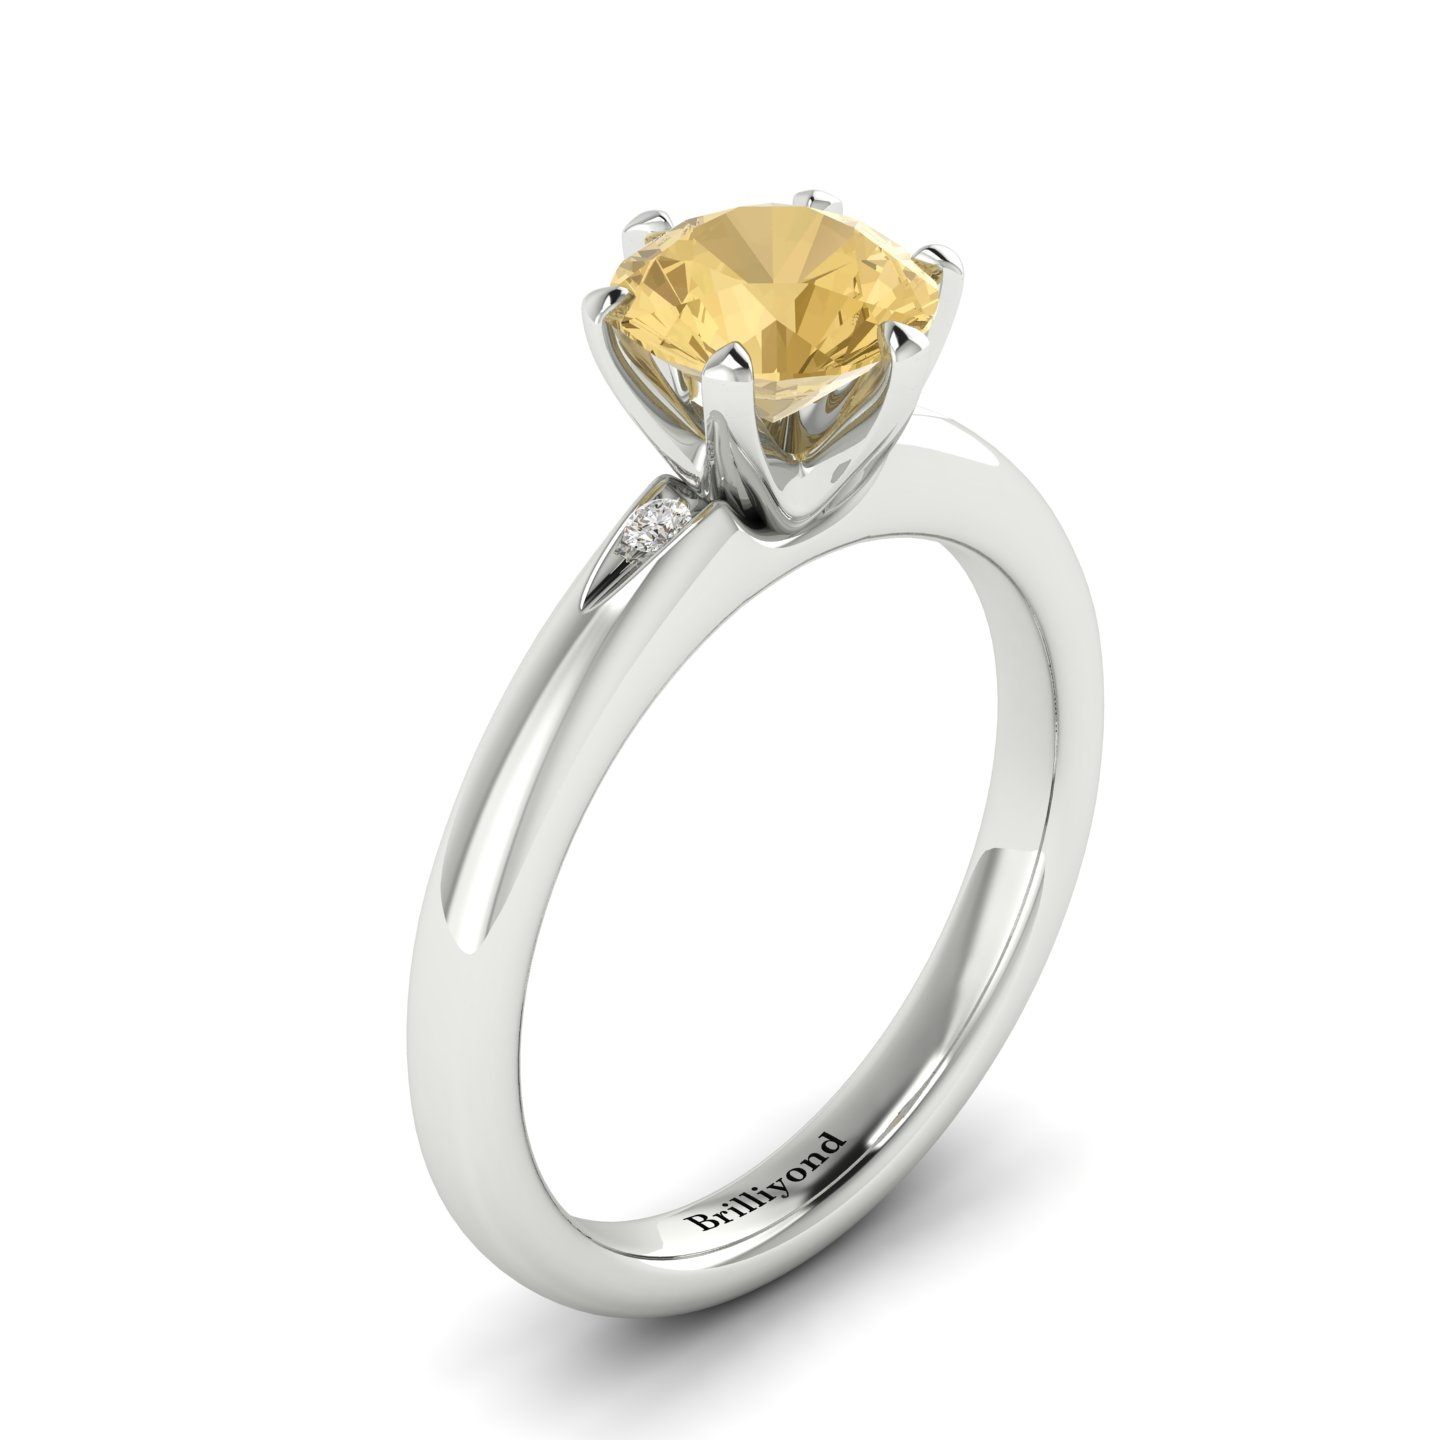 Golden Topaz White Gold Solitaire Engagement Ring Byond_image1